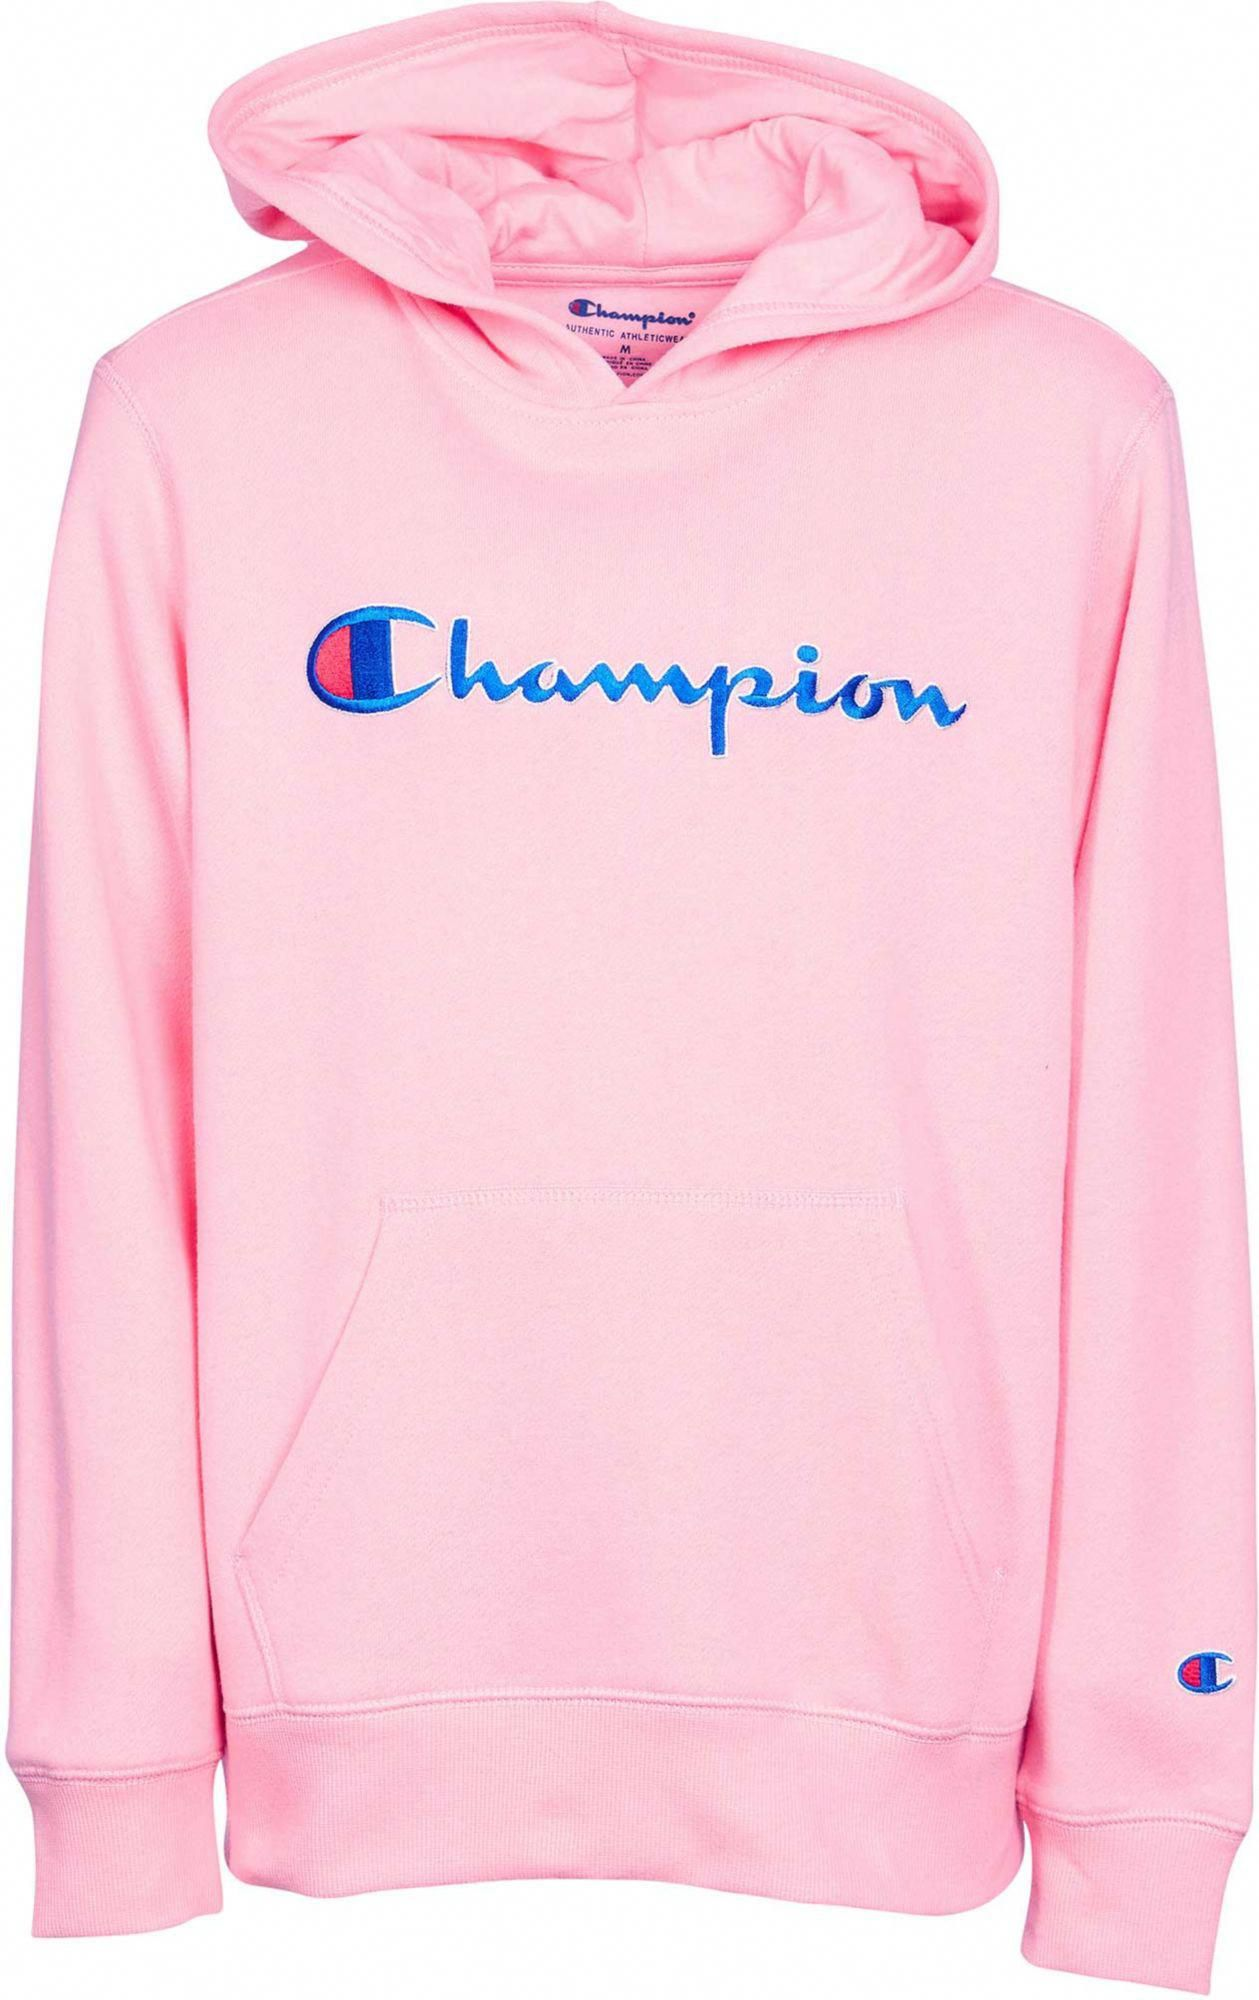 Predownload: Style Experts Give Up Five Refreshing New Techniques To Put On A Hoodie Without The Need For Seeming Li Girl Sweatshirts Pink Champion Hoodie Champion Clothing [ 2000 x 1259 Pixel ]